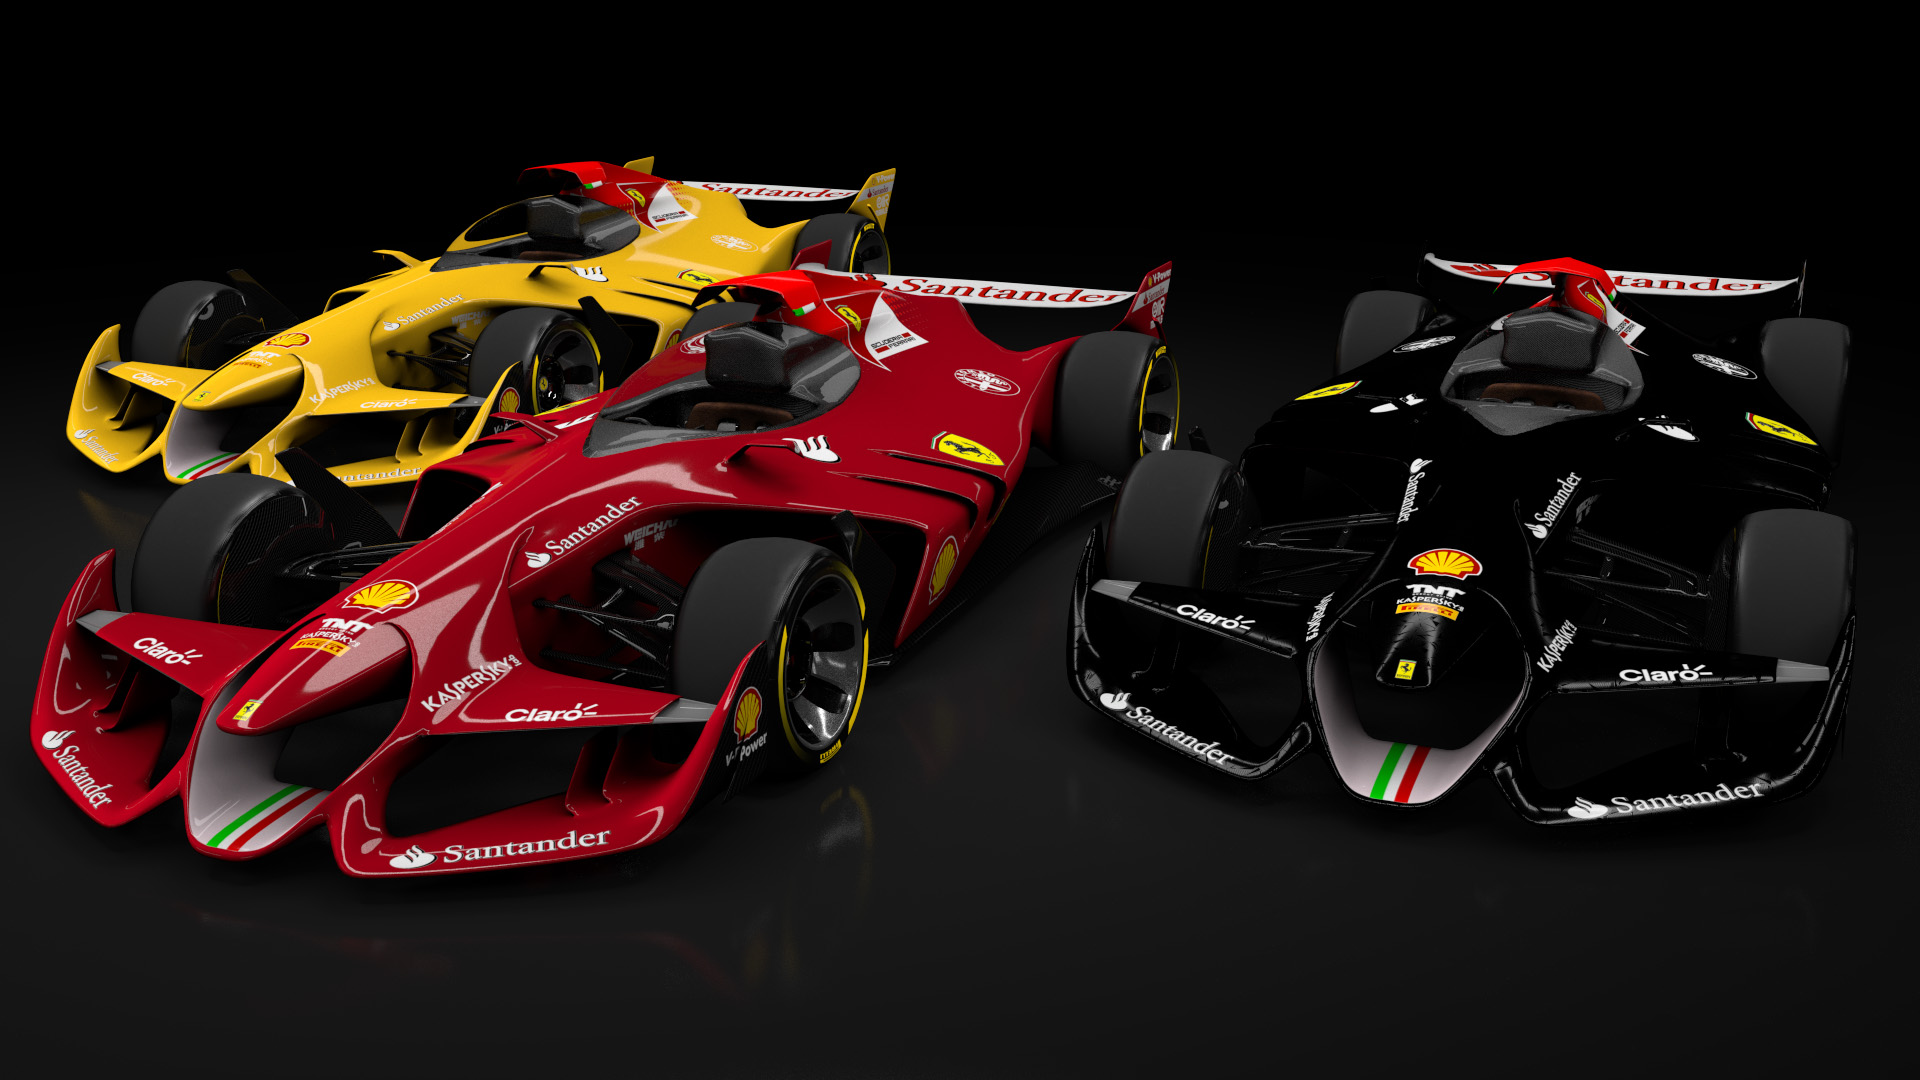 ferrari f1 concept 1 01 for ac  u2013 released  u2013 virtualr net  u2013 100  independent sim racing news